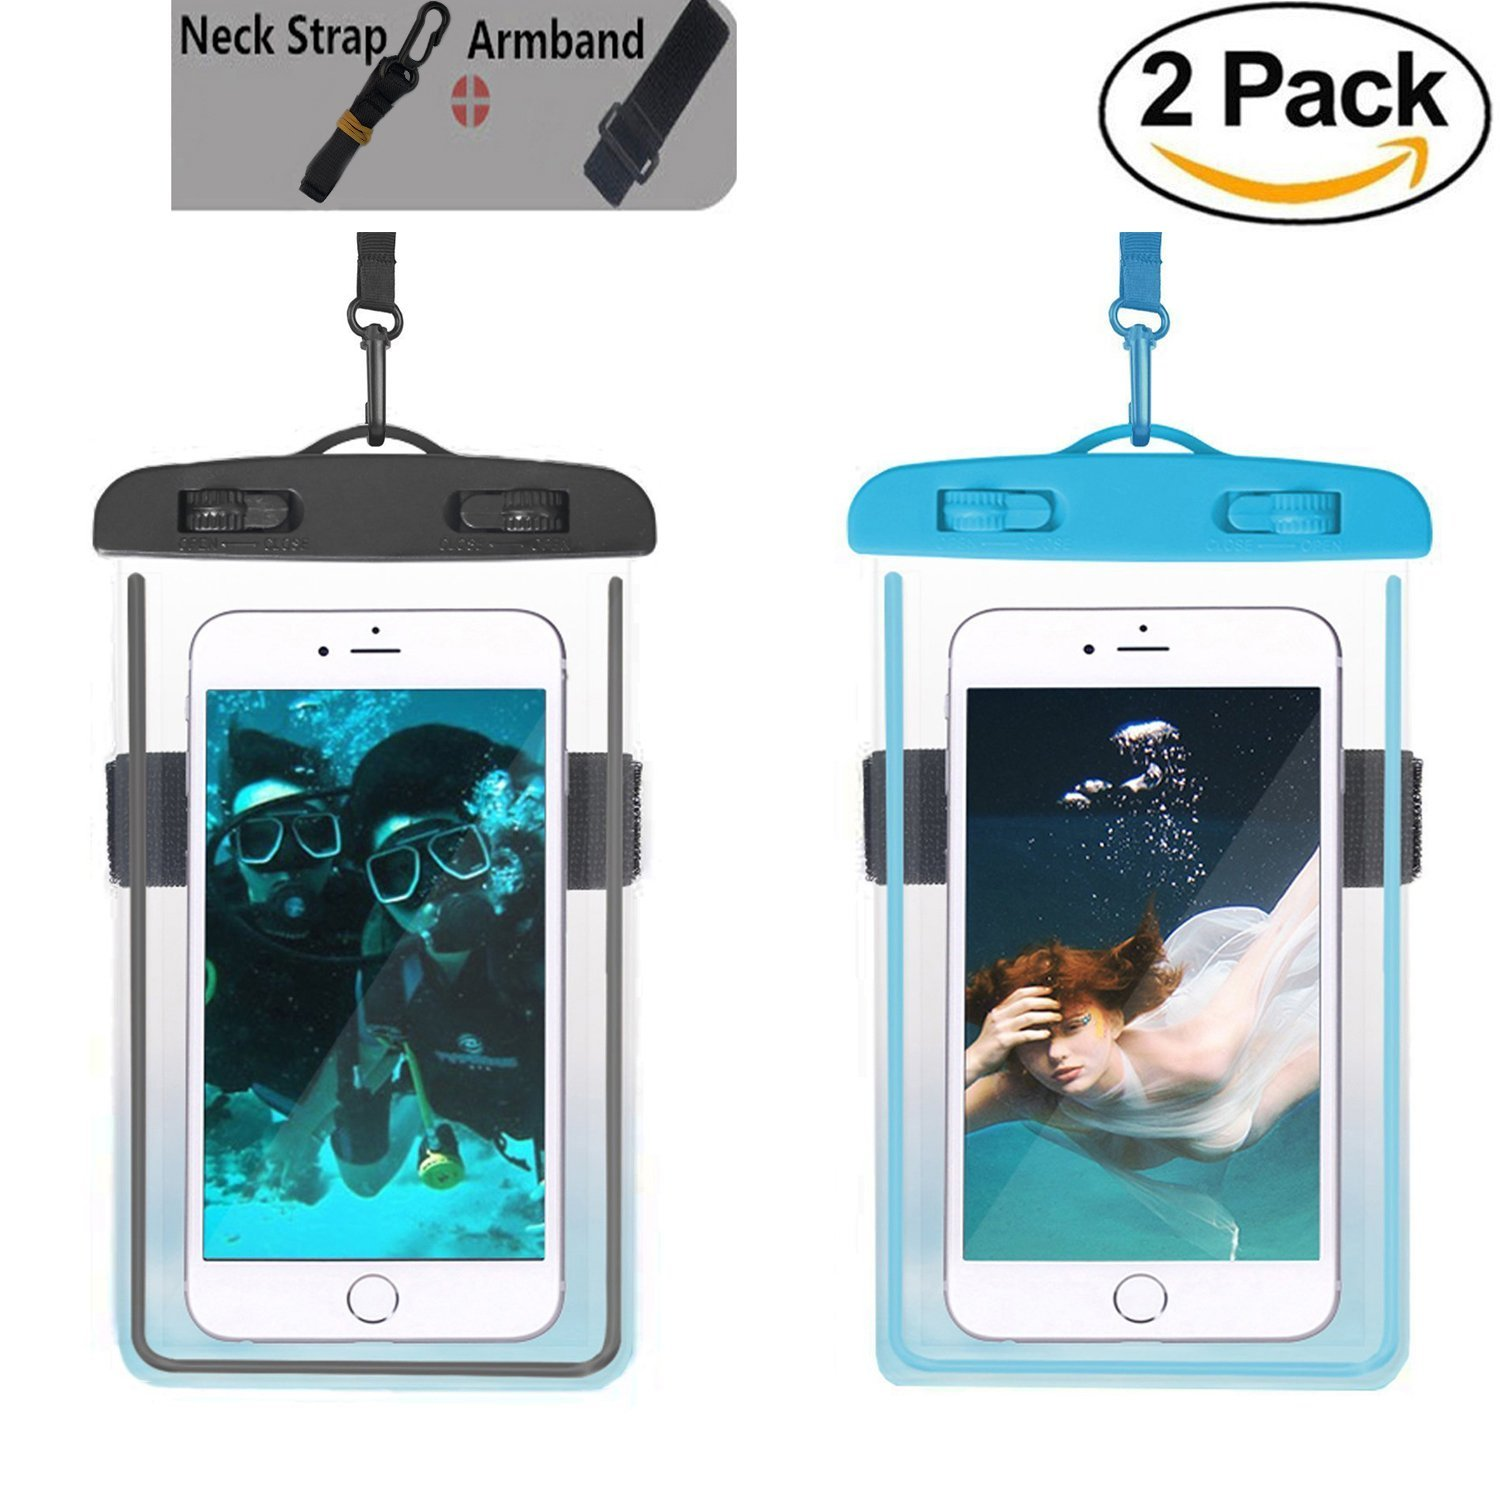 Universal Waterproof Phone Case,2pcs Waterproof Phone Pouch Dry Bag with Armband & Neck Strap for iPhone X 8 8Plus 7 7Plus 6S 6Plus, Samsung S9 Plus/S8Plus/Note 8 6 5 up to 6.0 (Black,Blue)